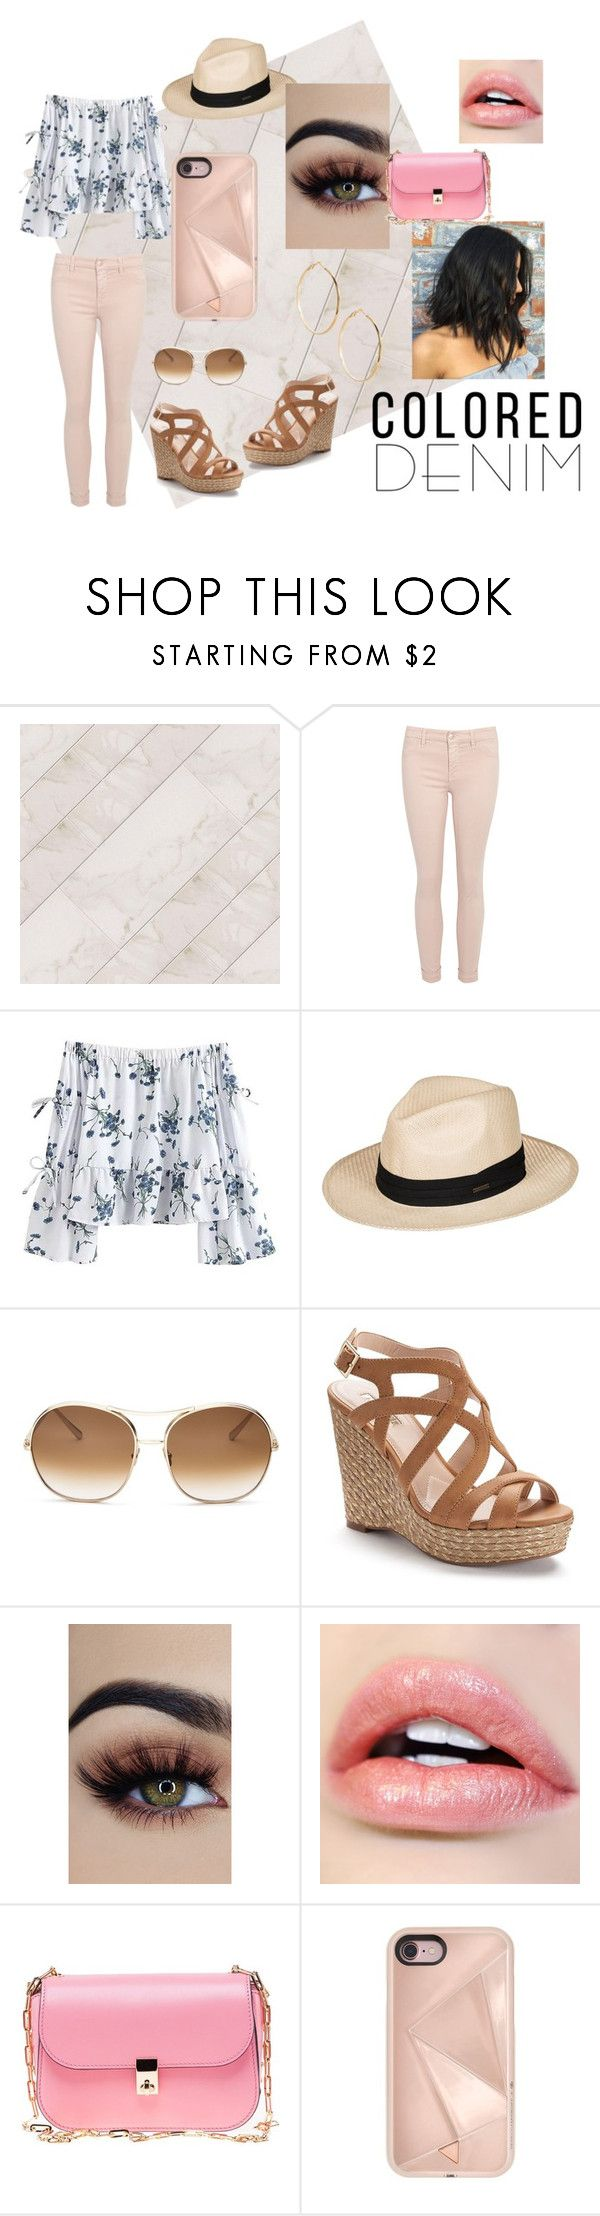 """""""Spring Style"""" by blueyooo ❤ liked on Polyvore featuring Roxy, Chloé, Jennifer Lopez, Valentino, Rebecca Minkoff and GUESS by Marciano"""